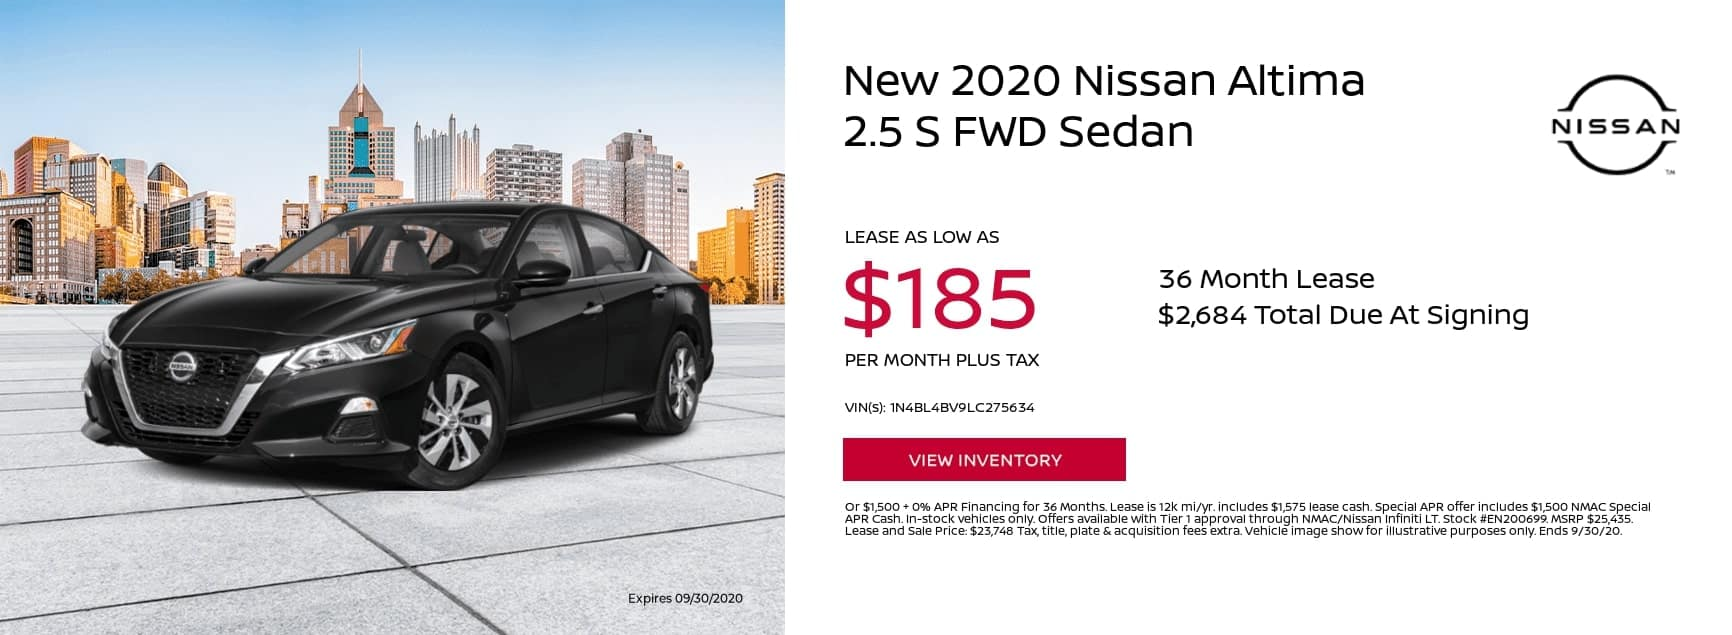 2020-Nissan-Altima-2.5-S-FWD-Sedan-38